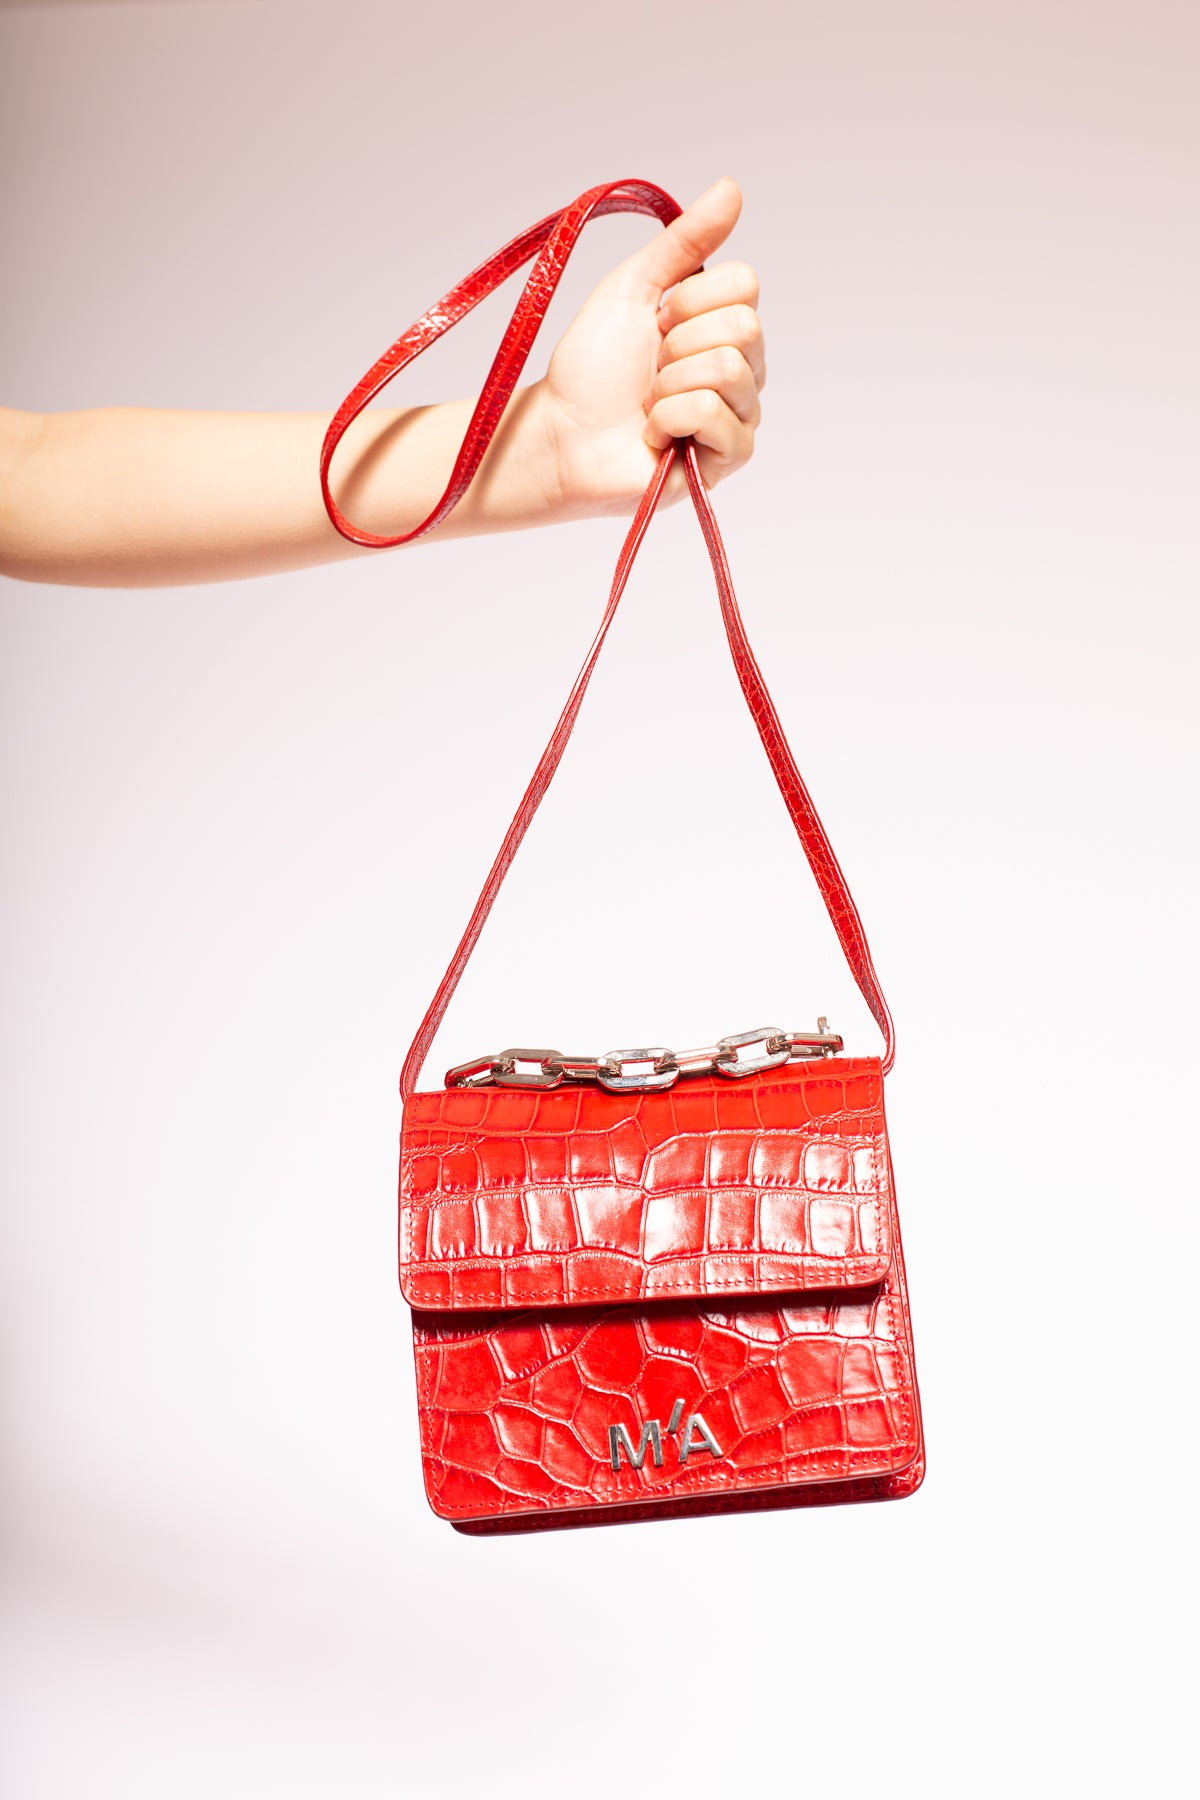 MINI CHAIN BAG IN RED - marques-almeida-dev